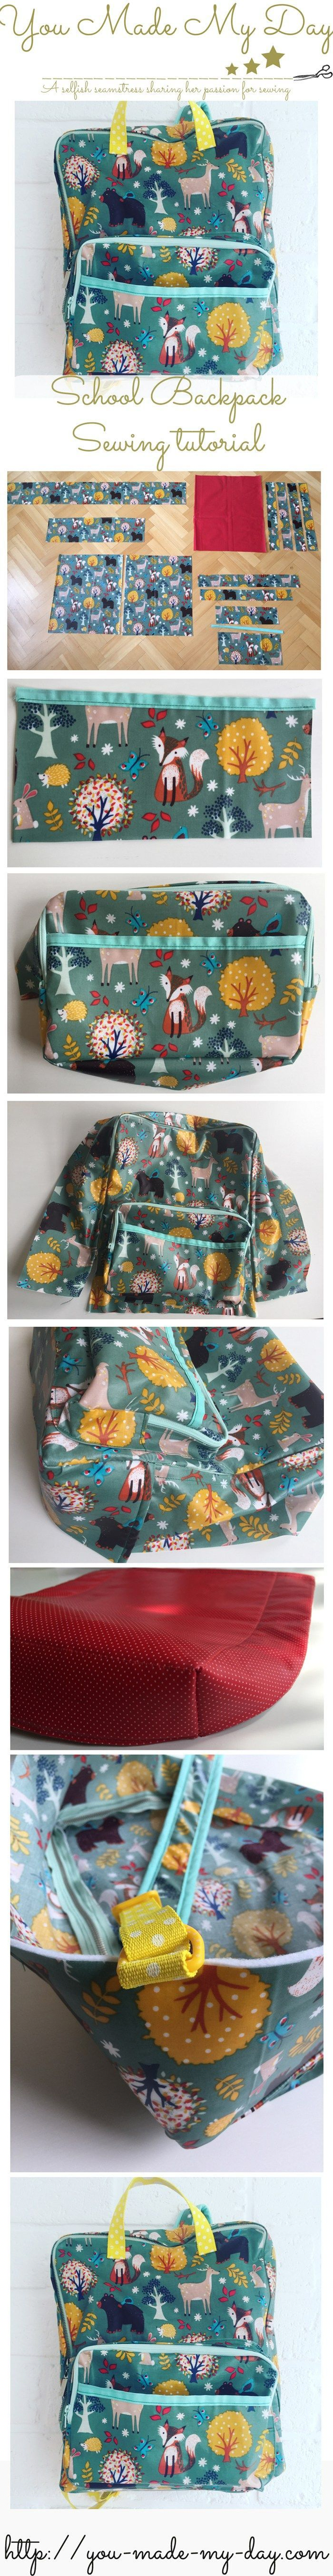 free backpack sewing tutorial and templates!